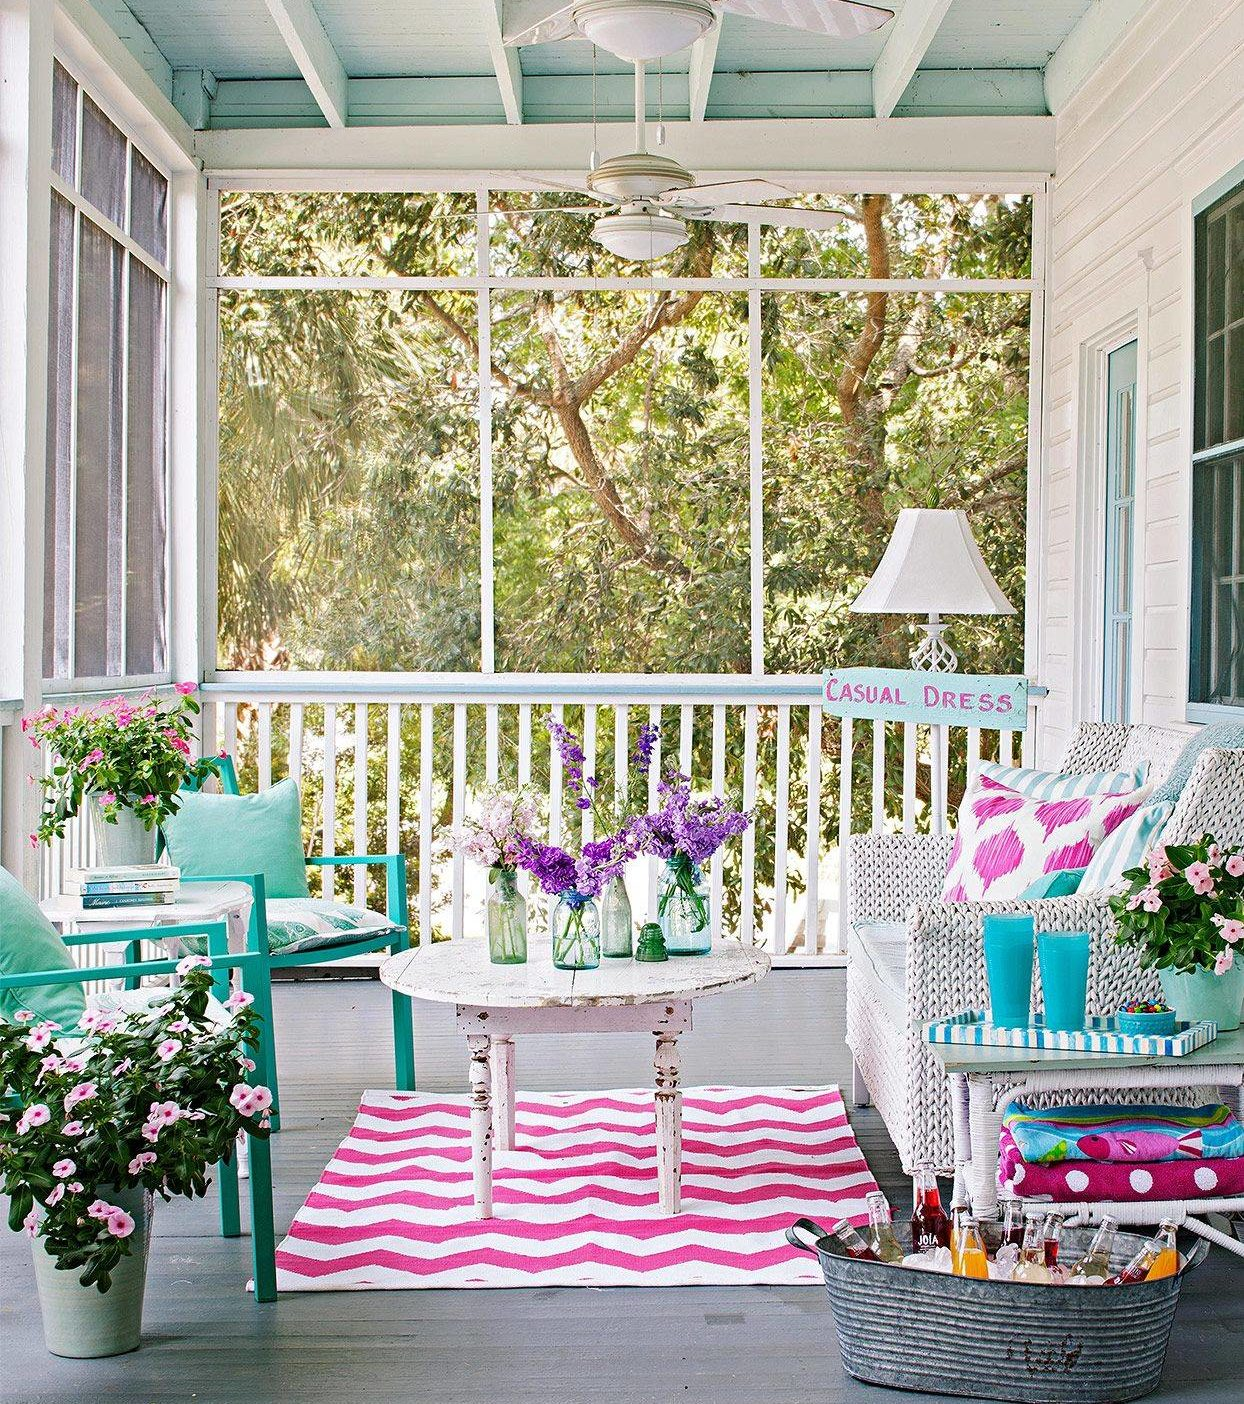 Modern Country Rustic Chic Porch Tiffany Blue Teal Aquamarine Sunroom Pink Chevron Area Rug